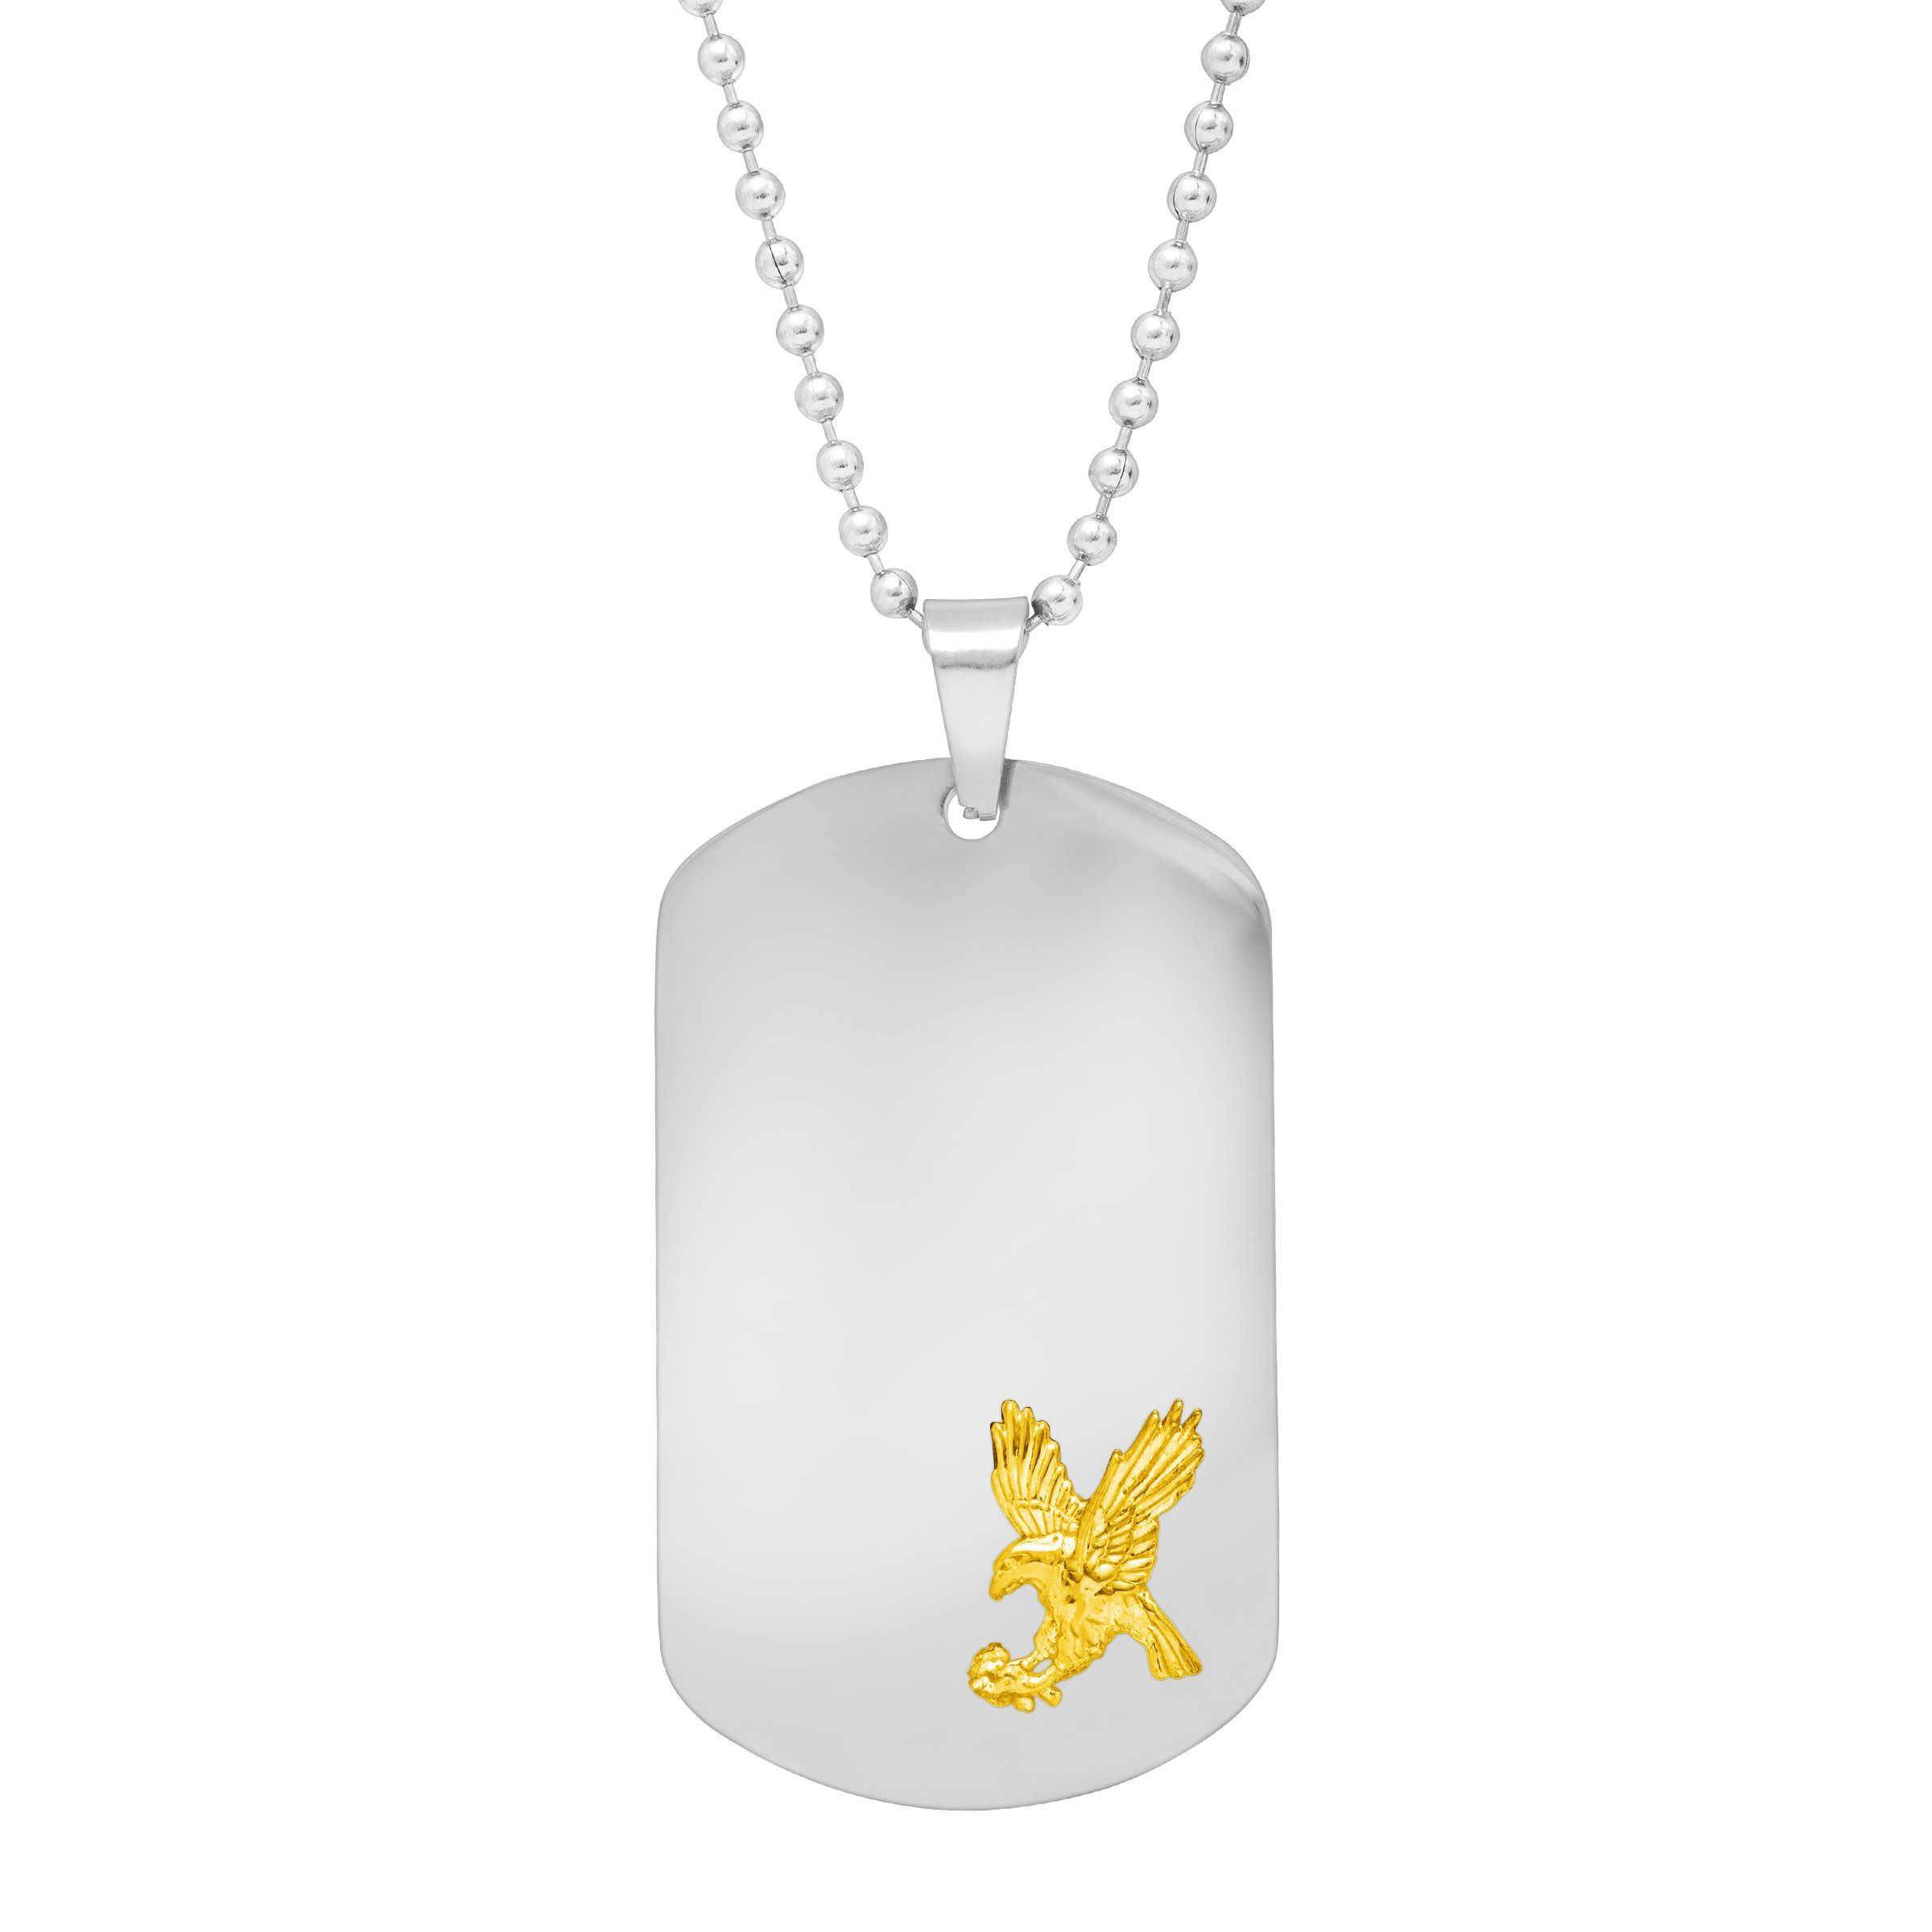 loss memorial dog print pet jewelry cat necklace fullxfull sterling personalized il paw silver listing initial